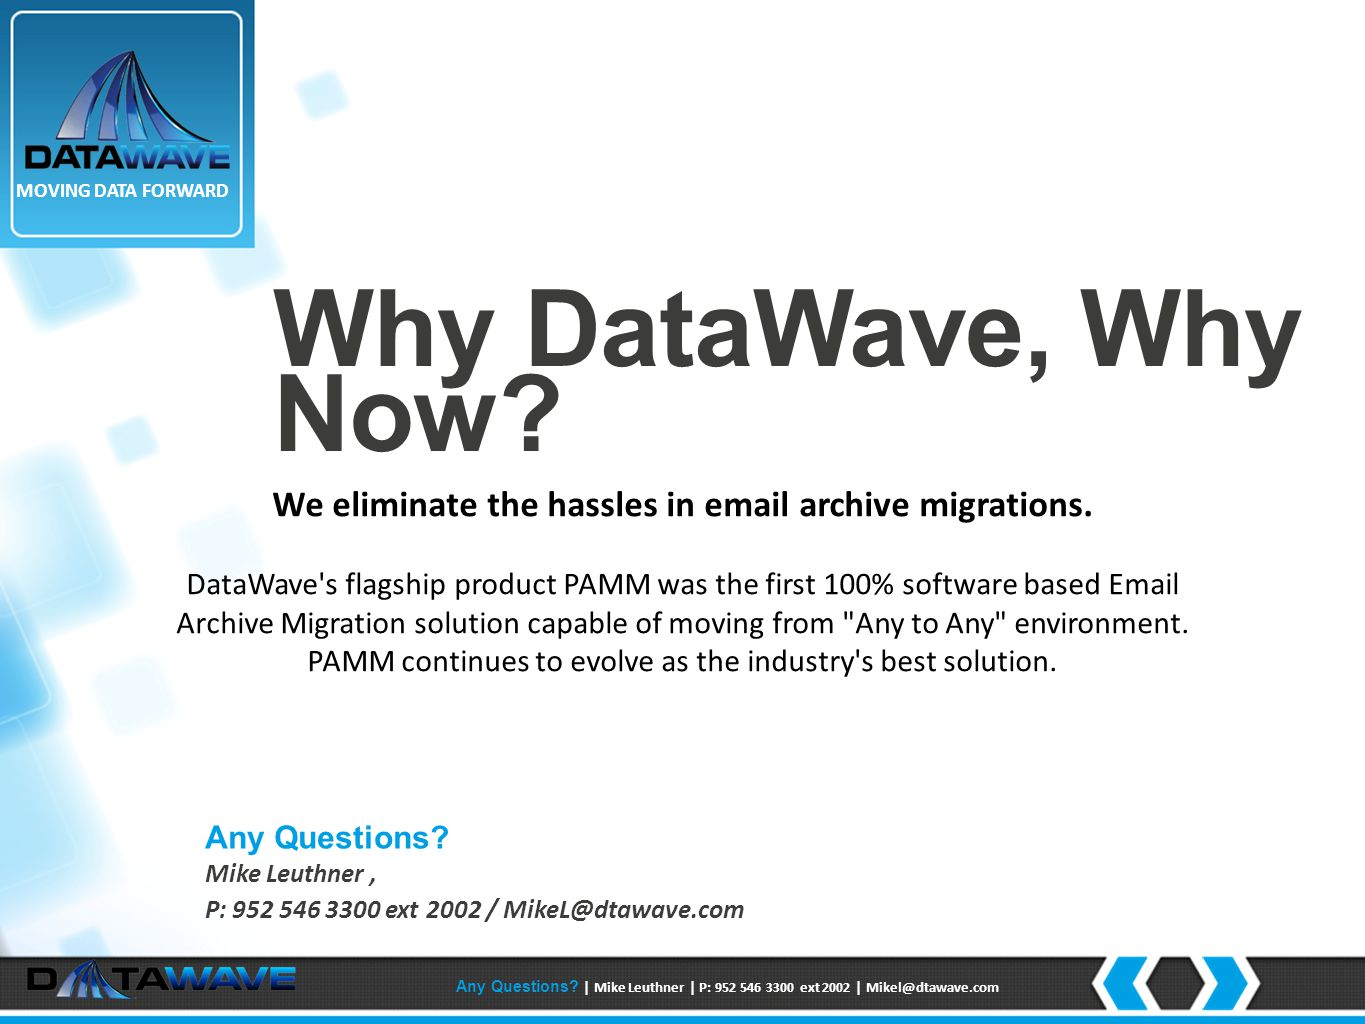 Why DataWave, Why Now. We eliminate the hassles in email archive migrations.